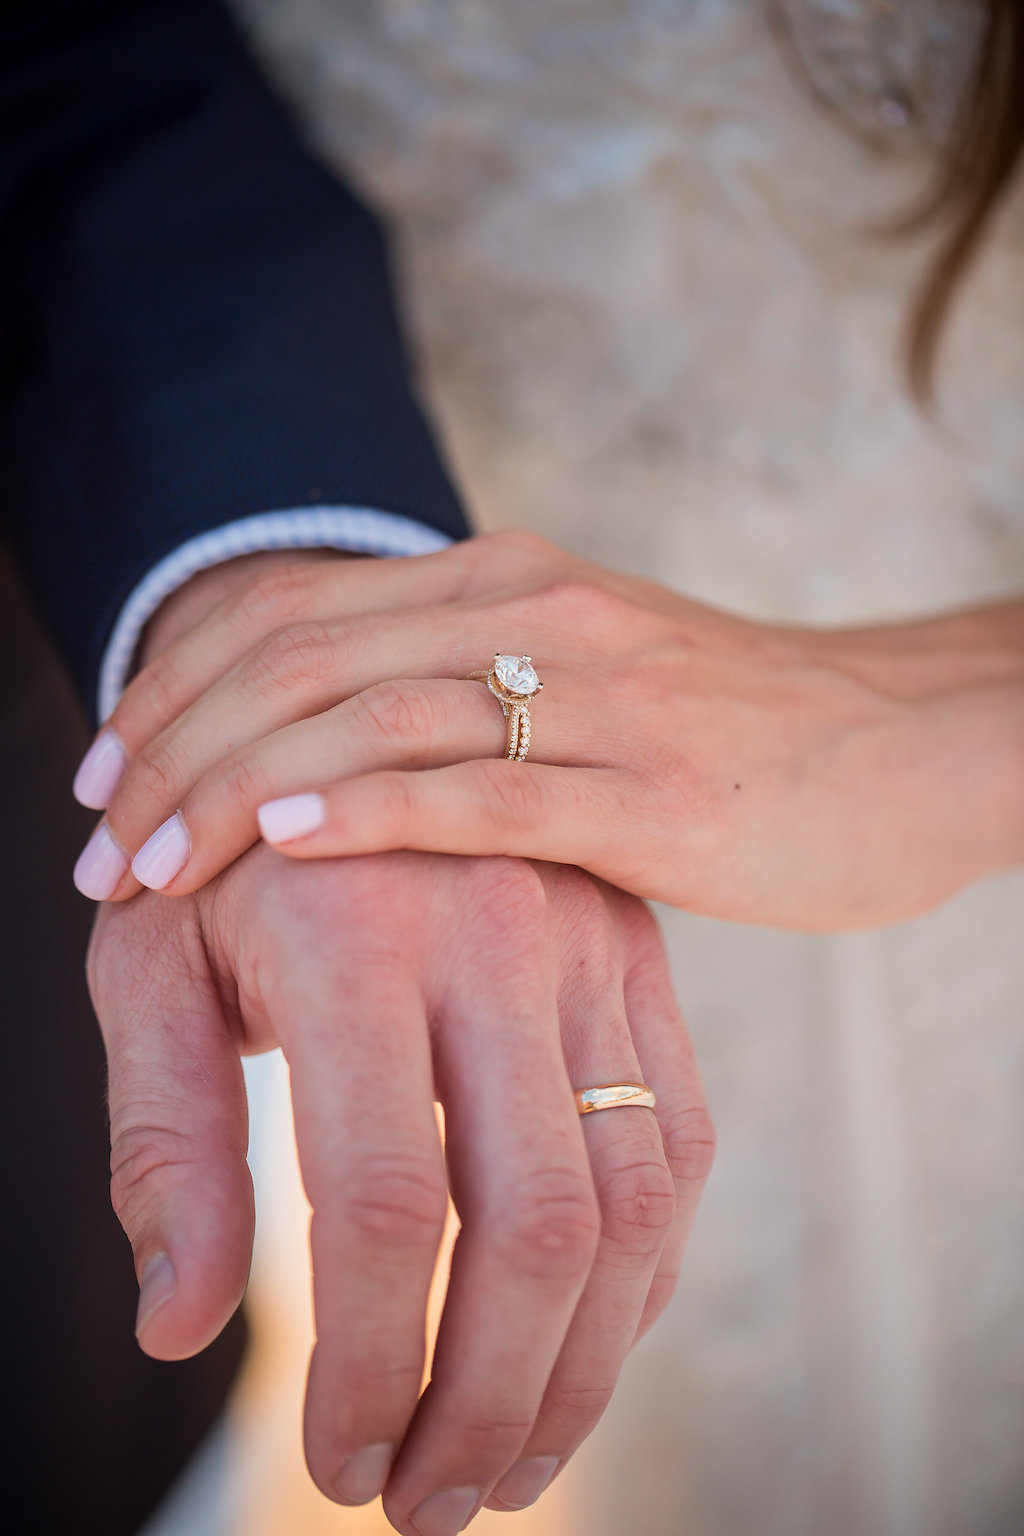 Bride and Groom Showing Gold Wedding Rings